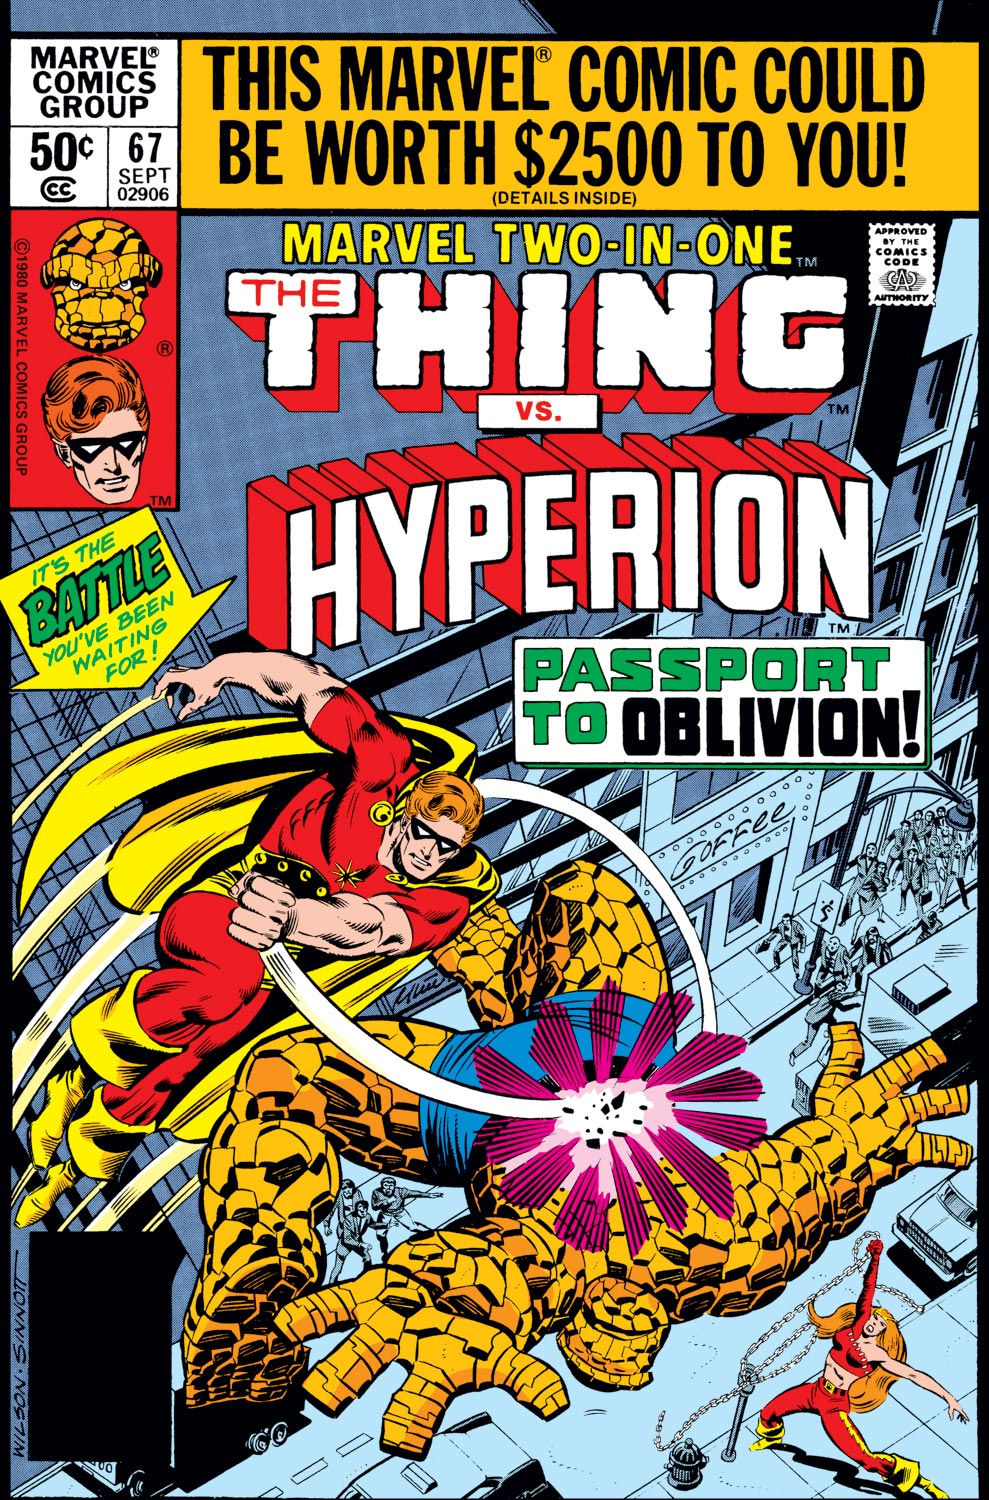 Marvel Two-in-One (1974) #67